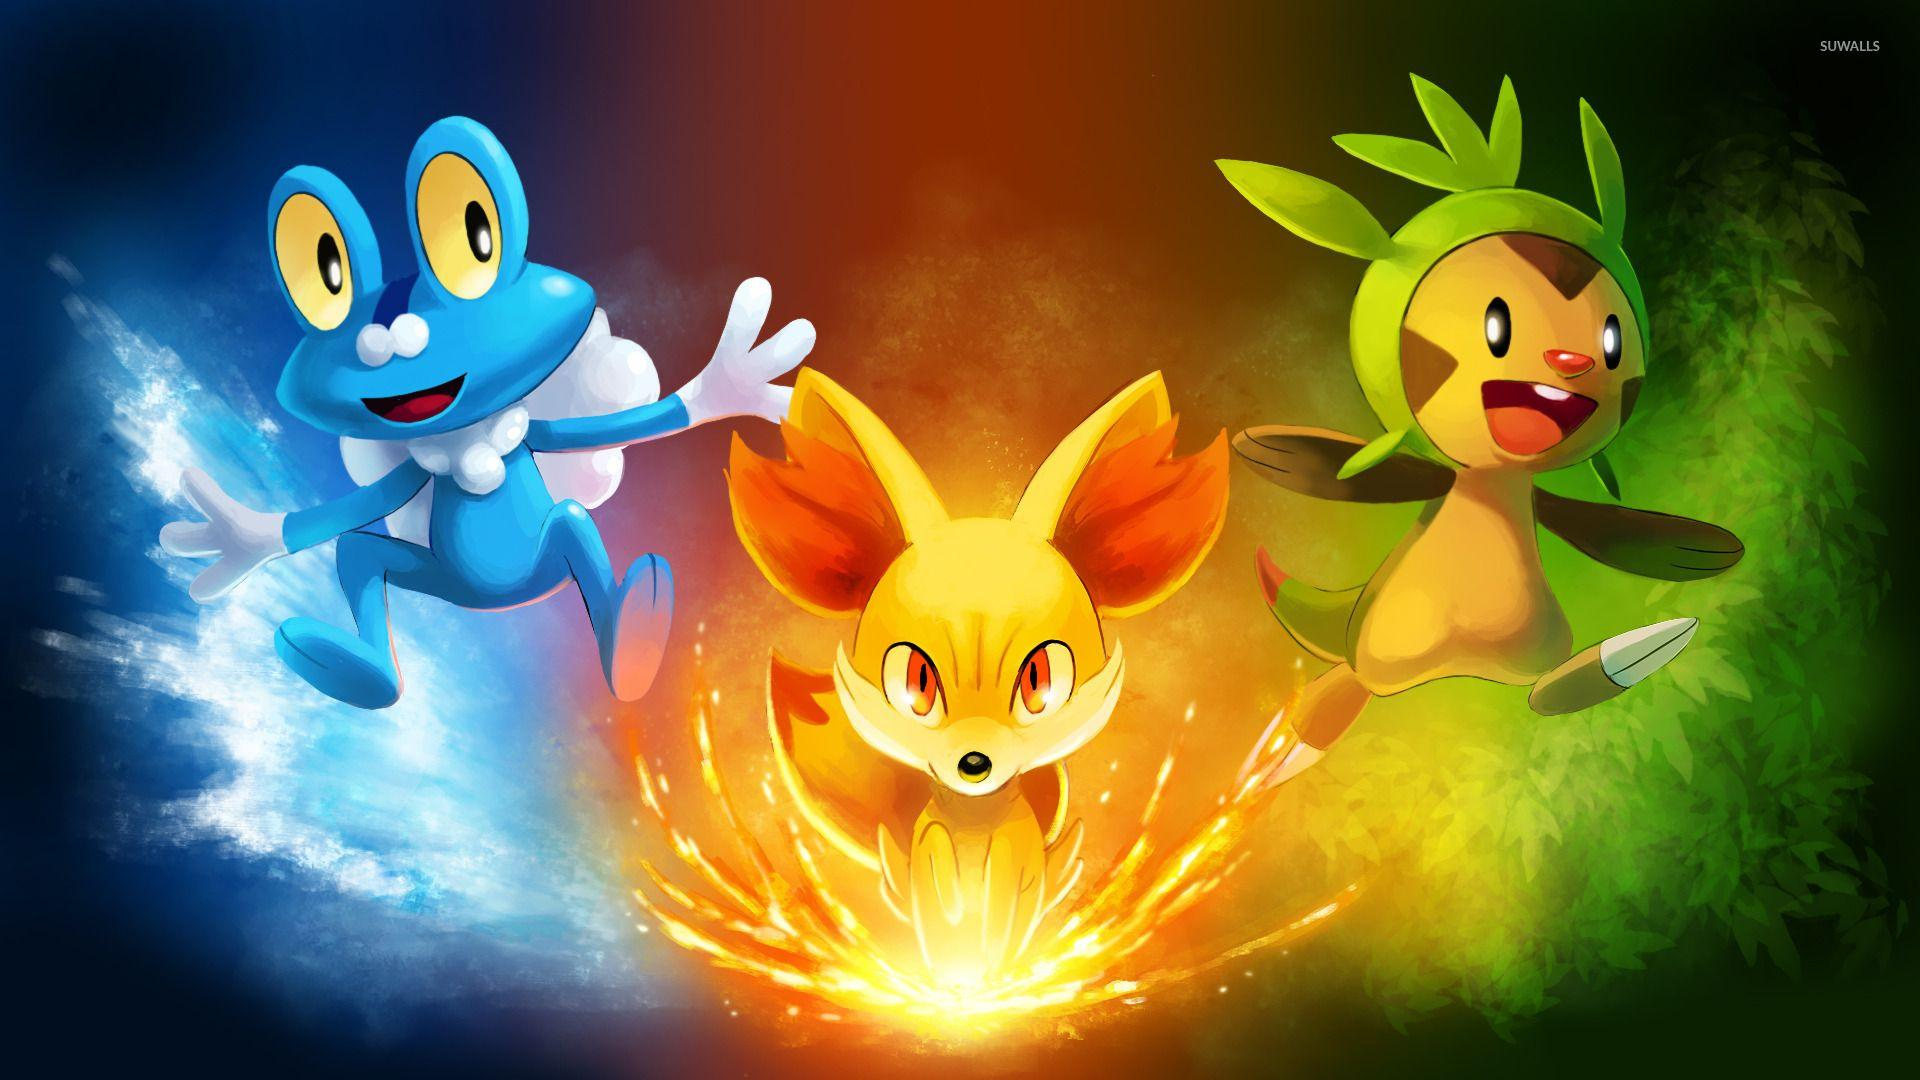 Pokemon X and Y Wallpapers - WallpaperSafari